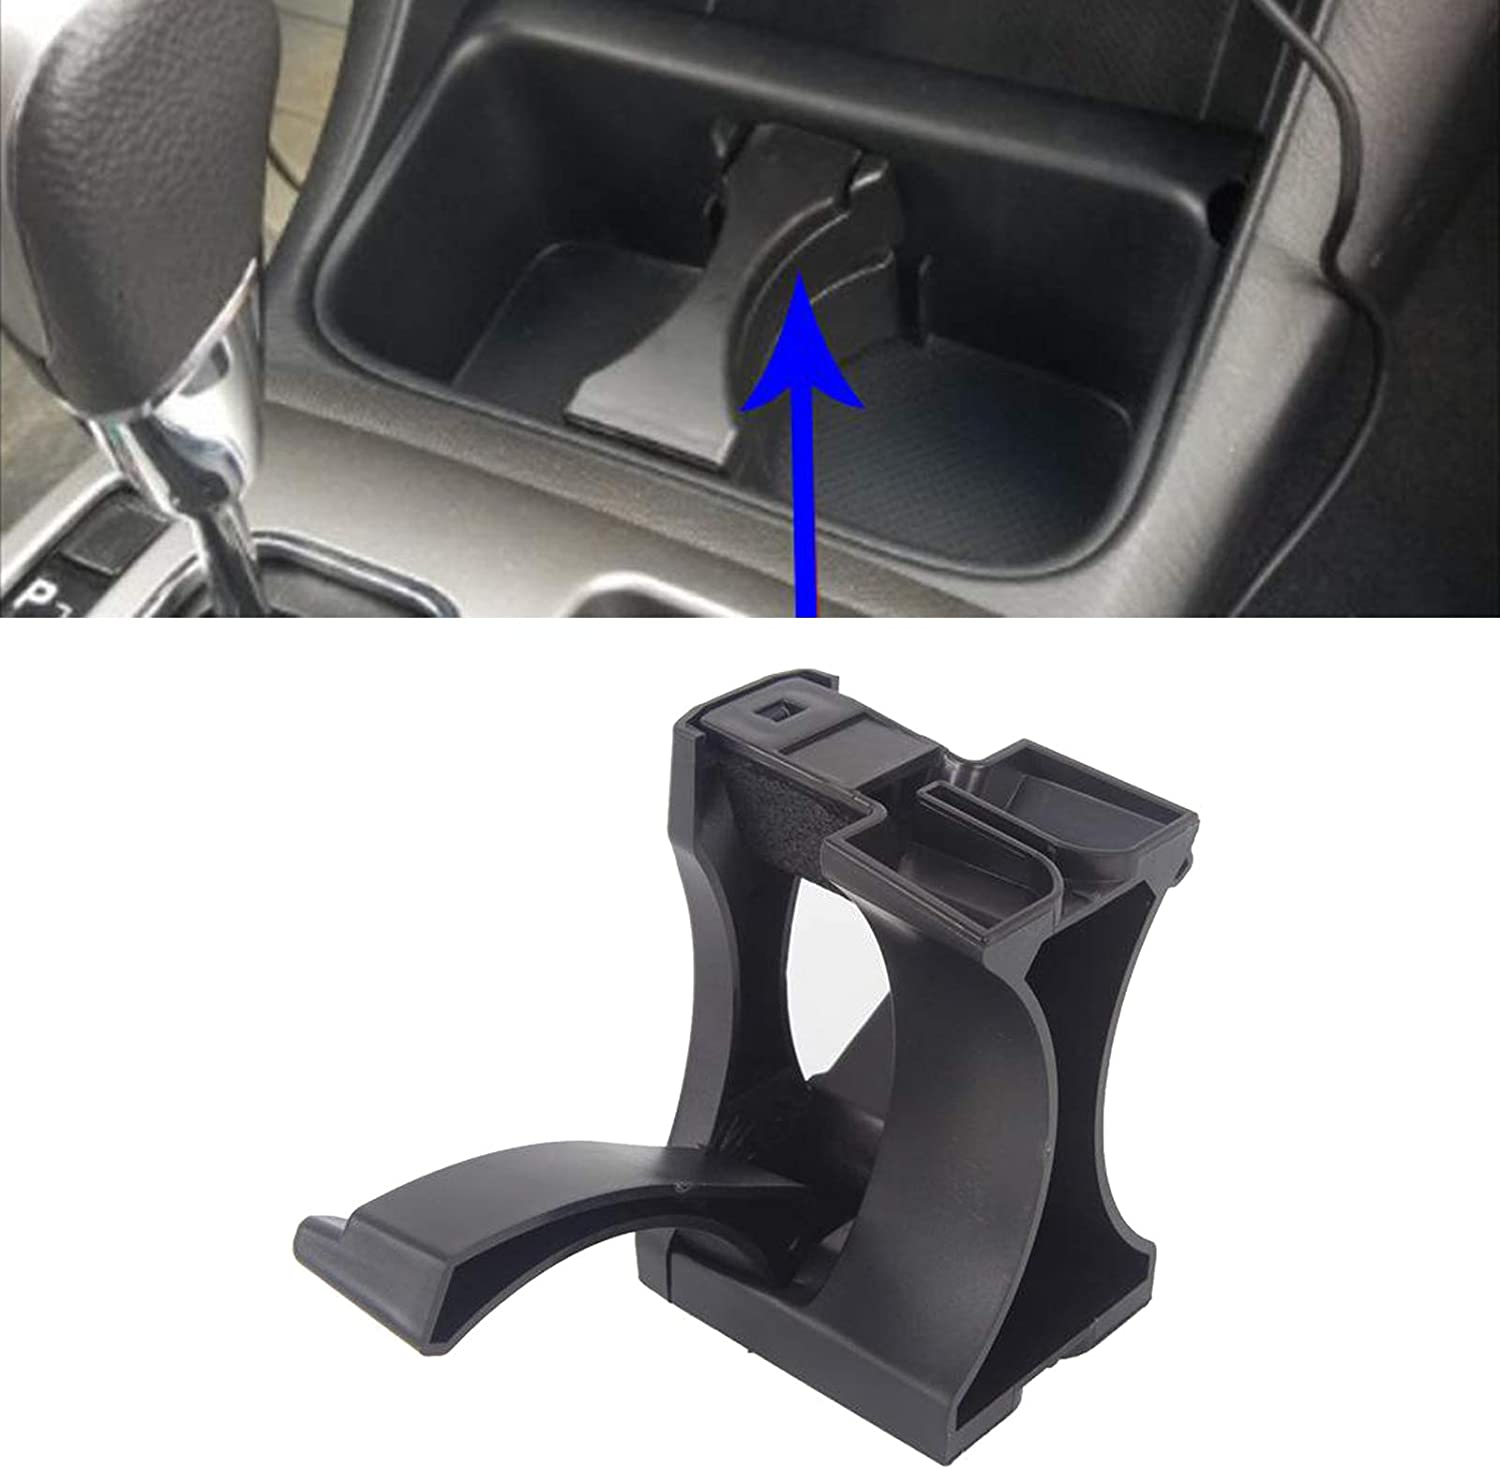 balikha Car Cup Holder Insert Divider Fits for Toyota Tacoma Sequoia